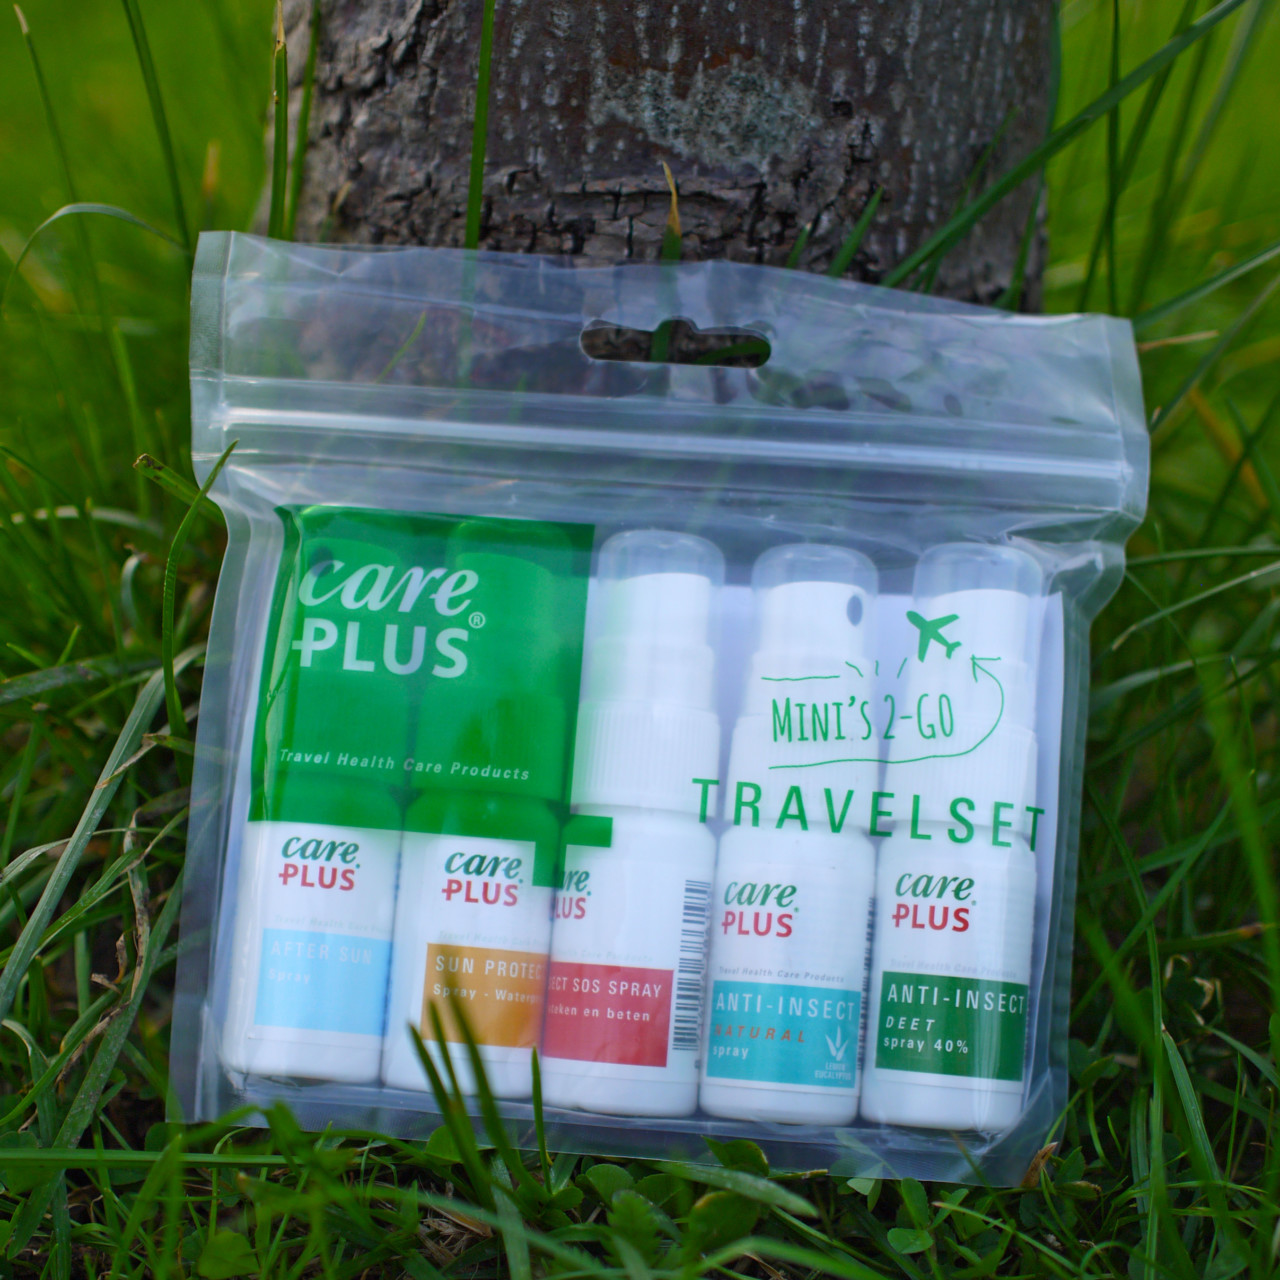 Care Plus travelset mini's